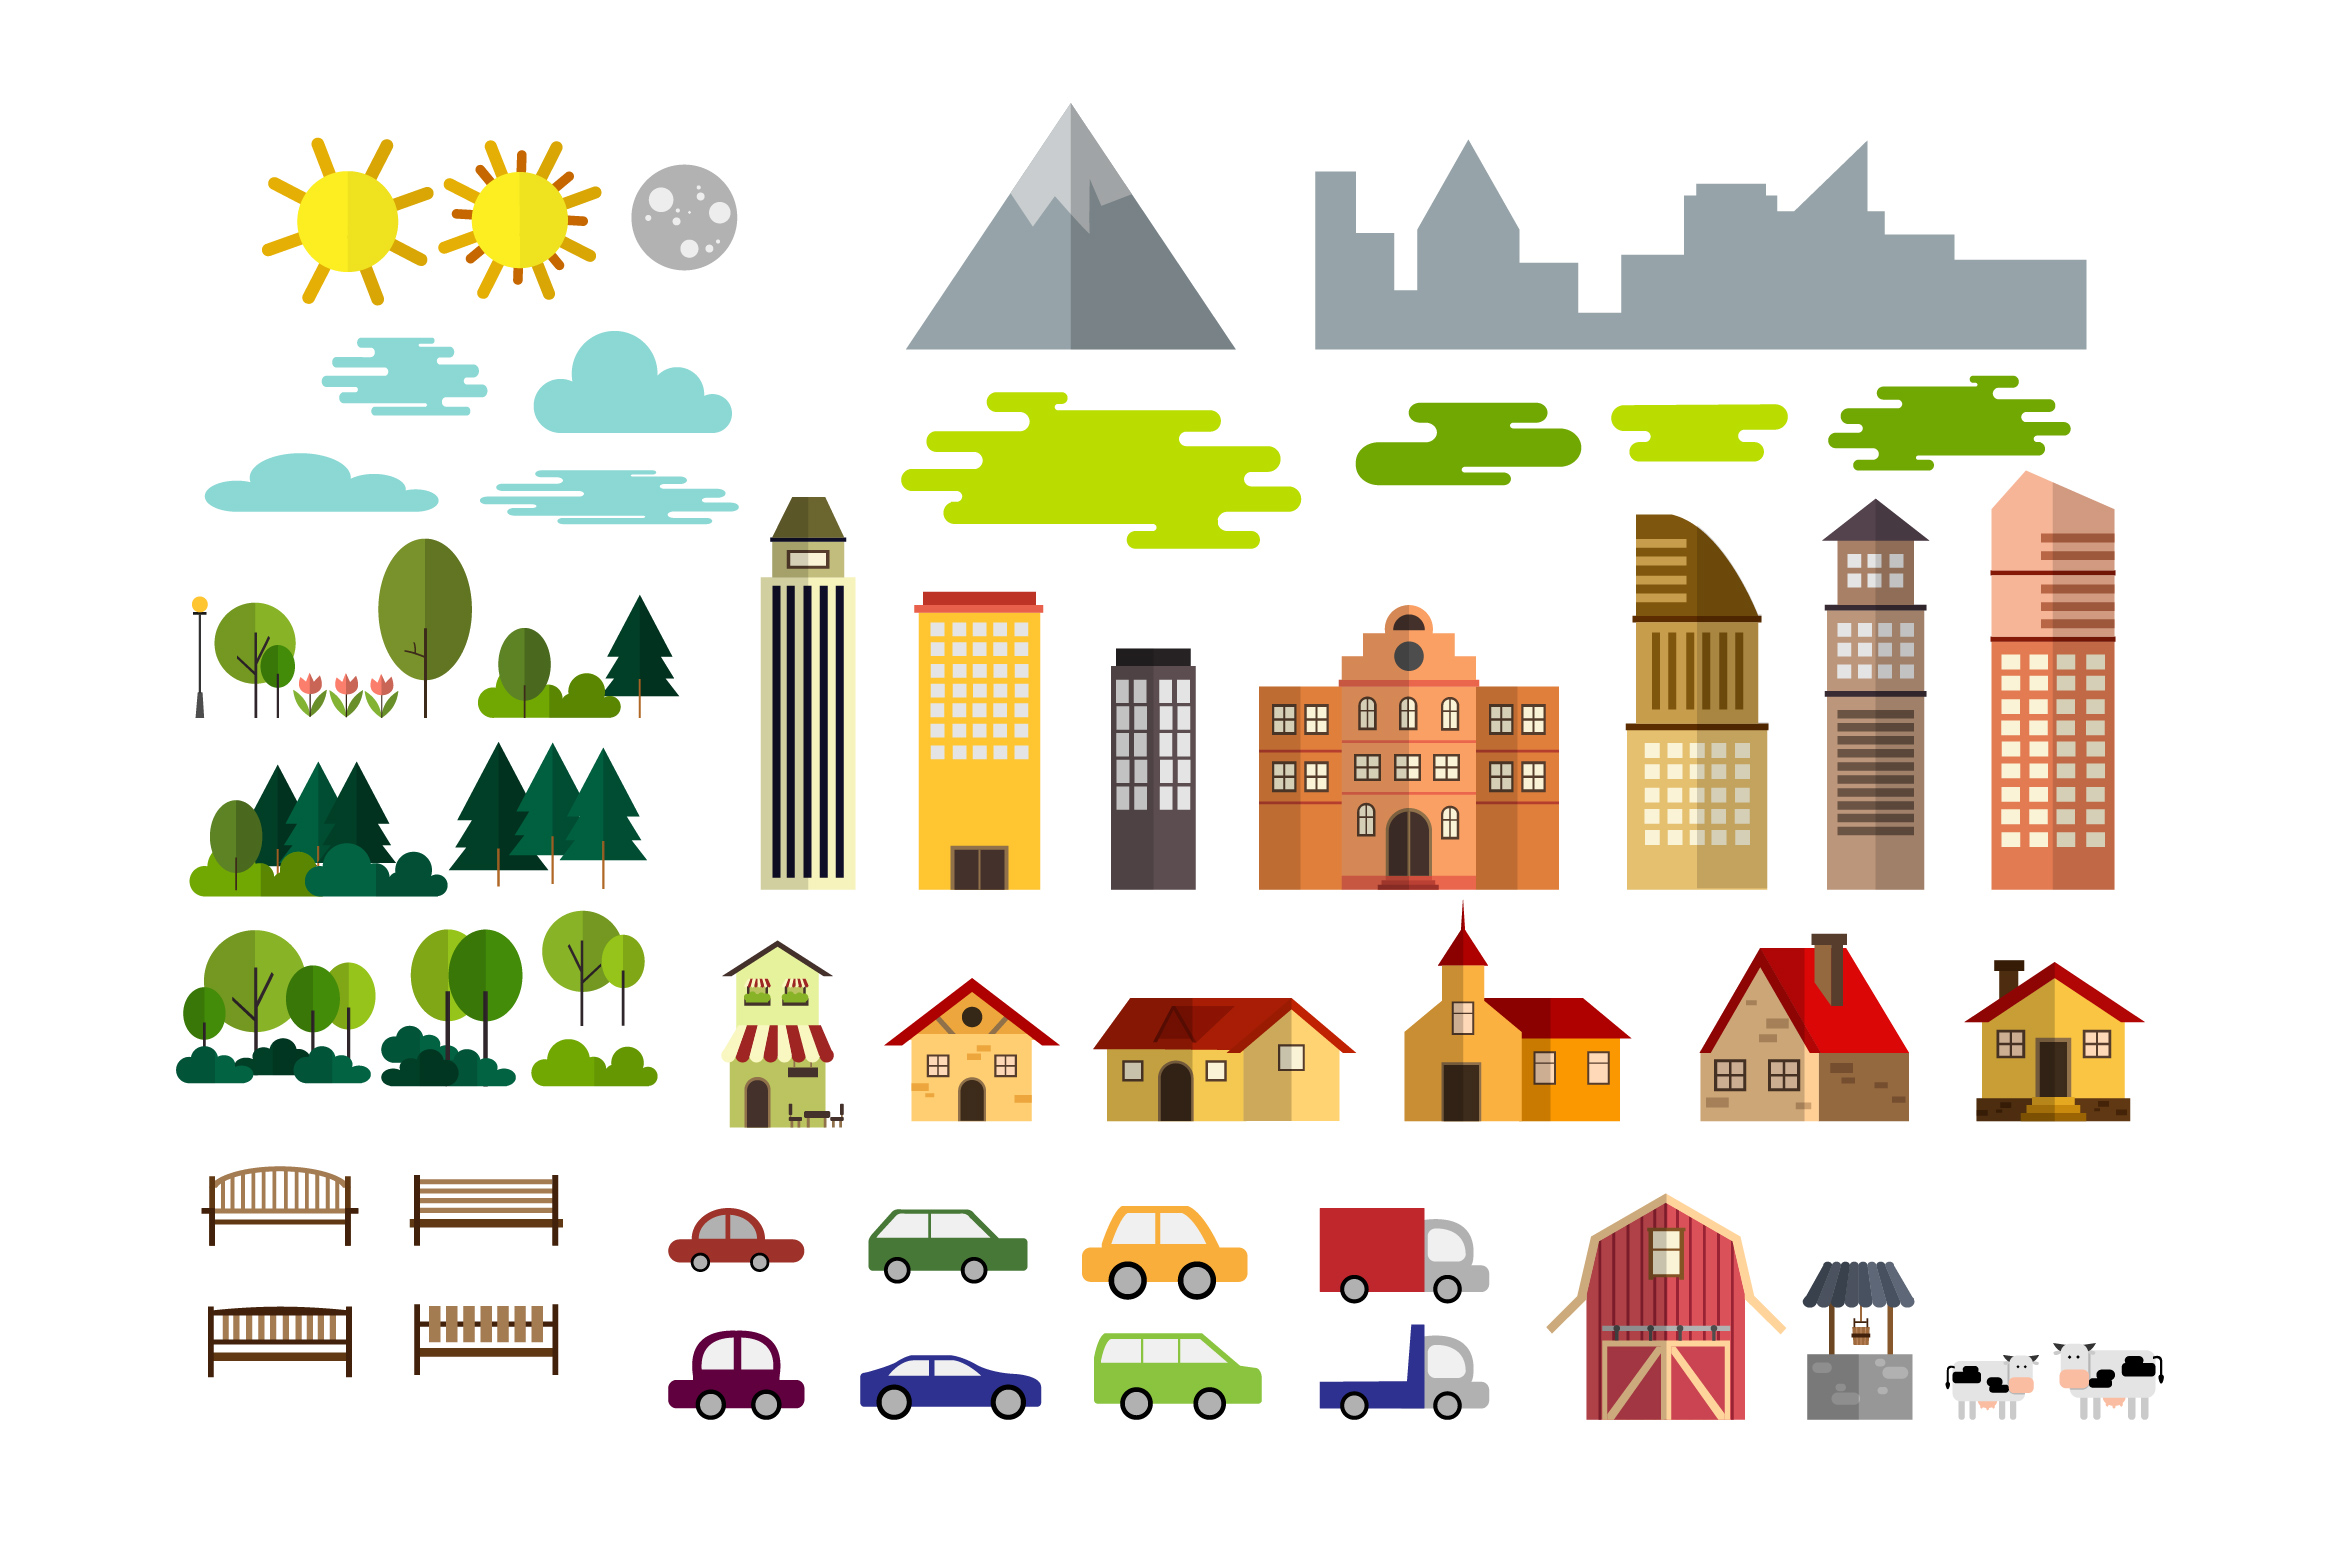 Download Free Urban Village Landscape Set Graphic By Storictype Creative for Cricut Explore, Silhouette and other cutting machines.